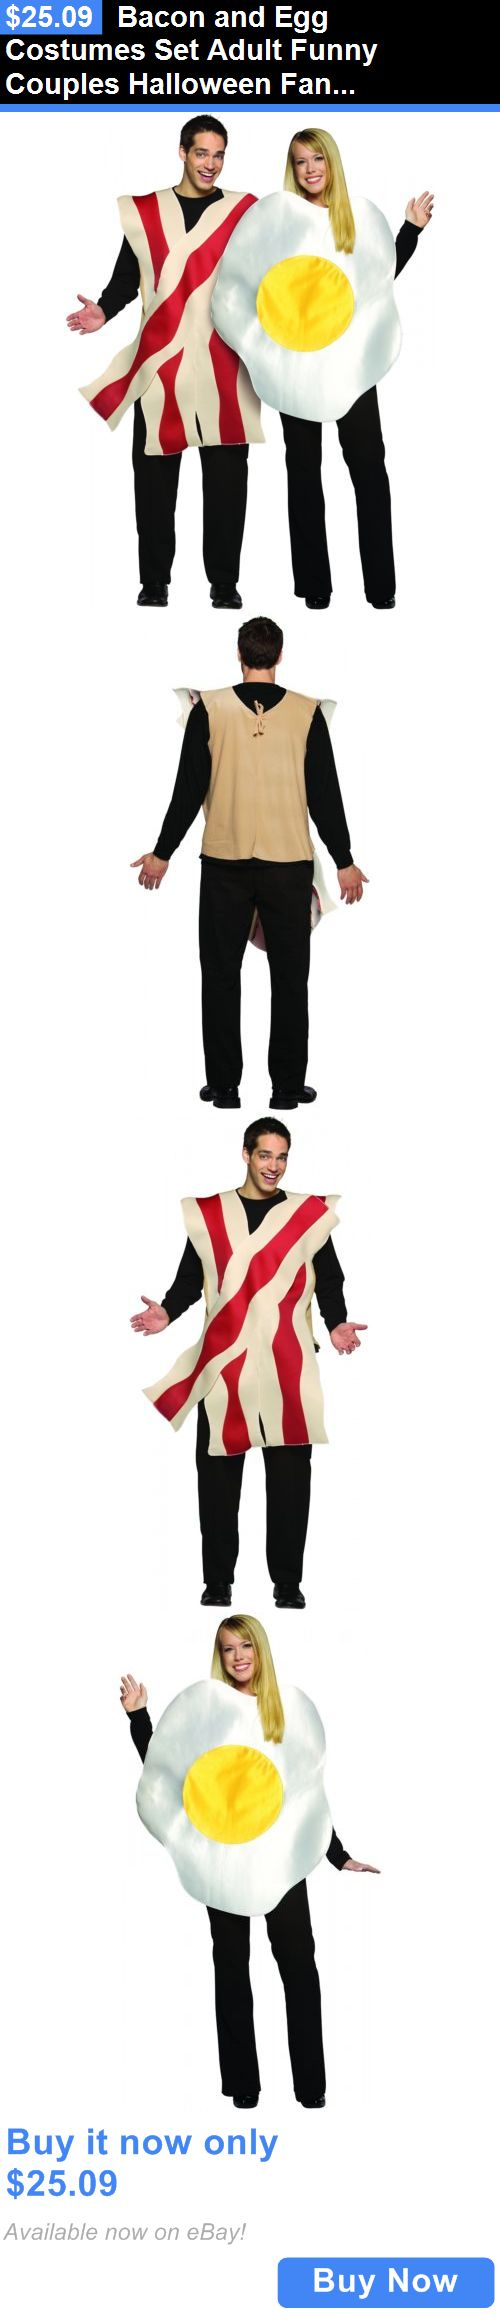 Halloween Costumes Couples: Bacon And Egg Costumes Set Adult Funny Couples Halloween Fancy Dress BUY IT NOW ONLY: $25.09